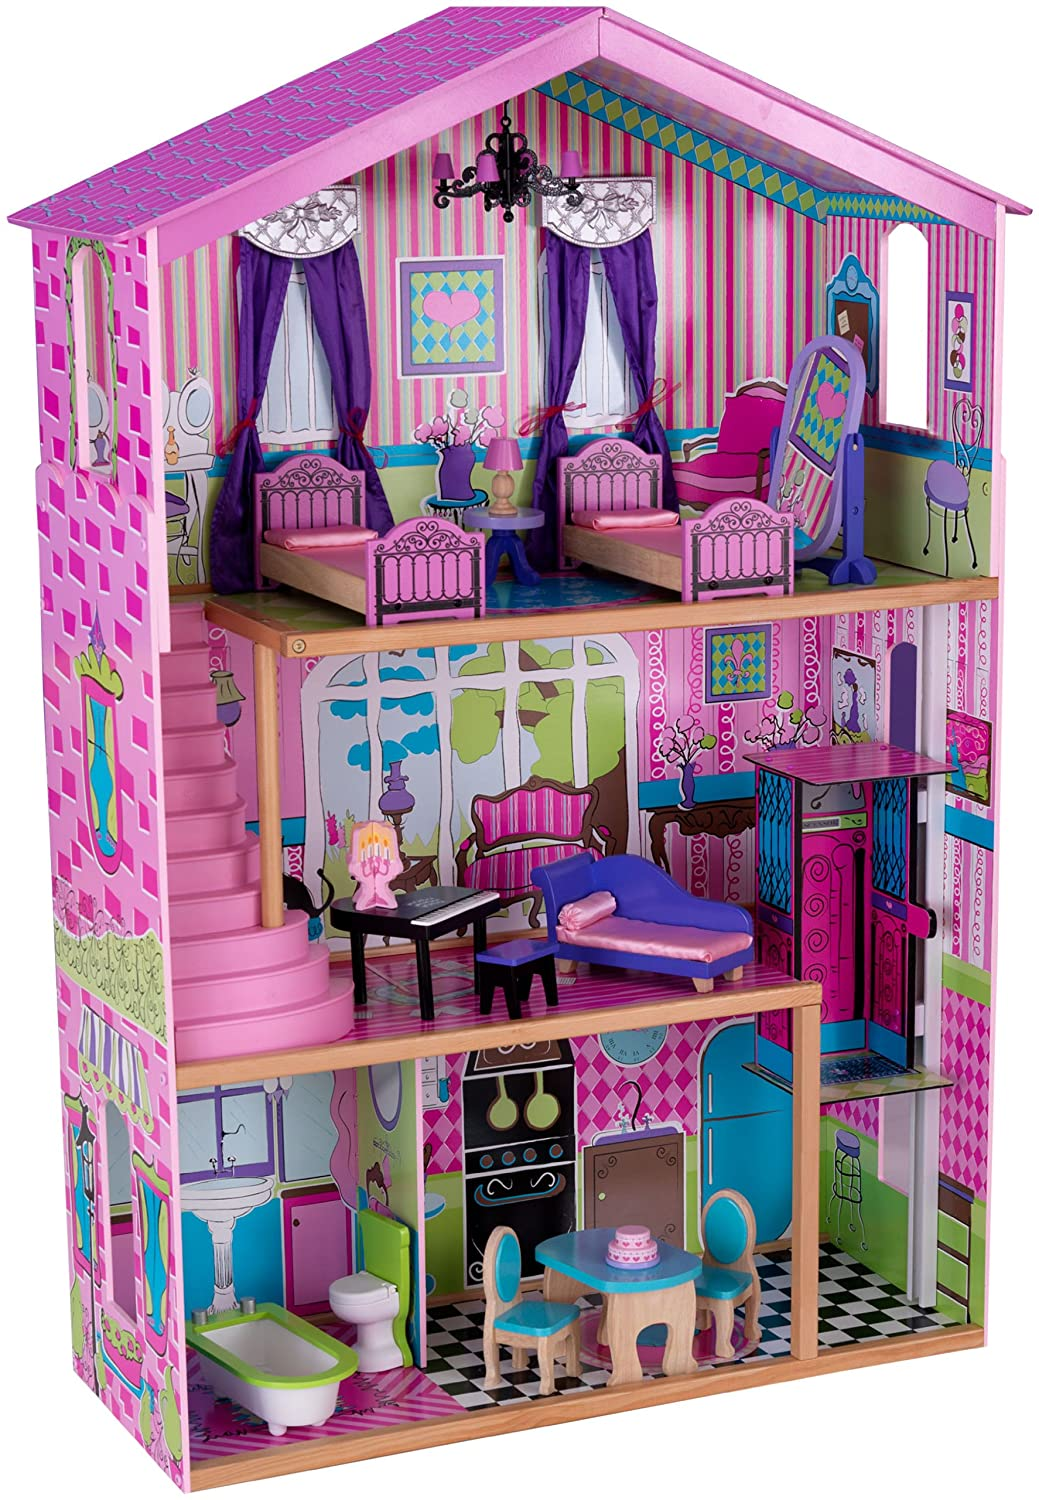 10 awesome barbie doll house models -